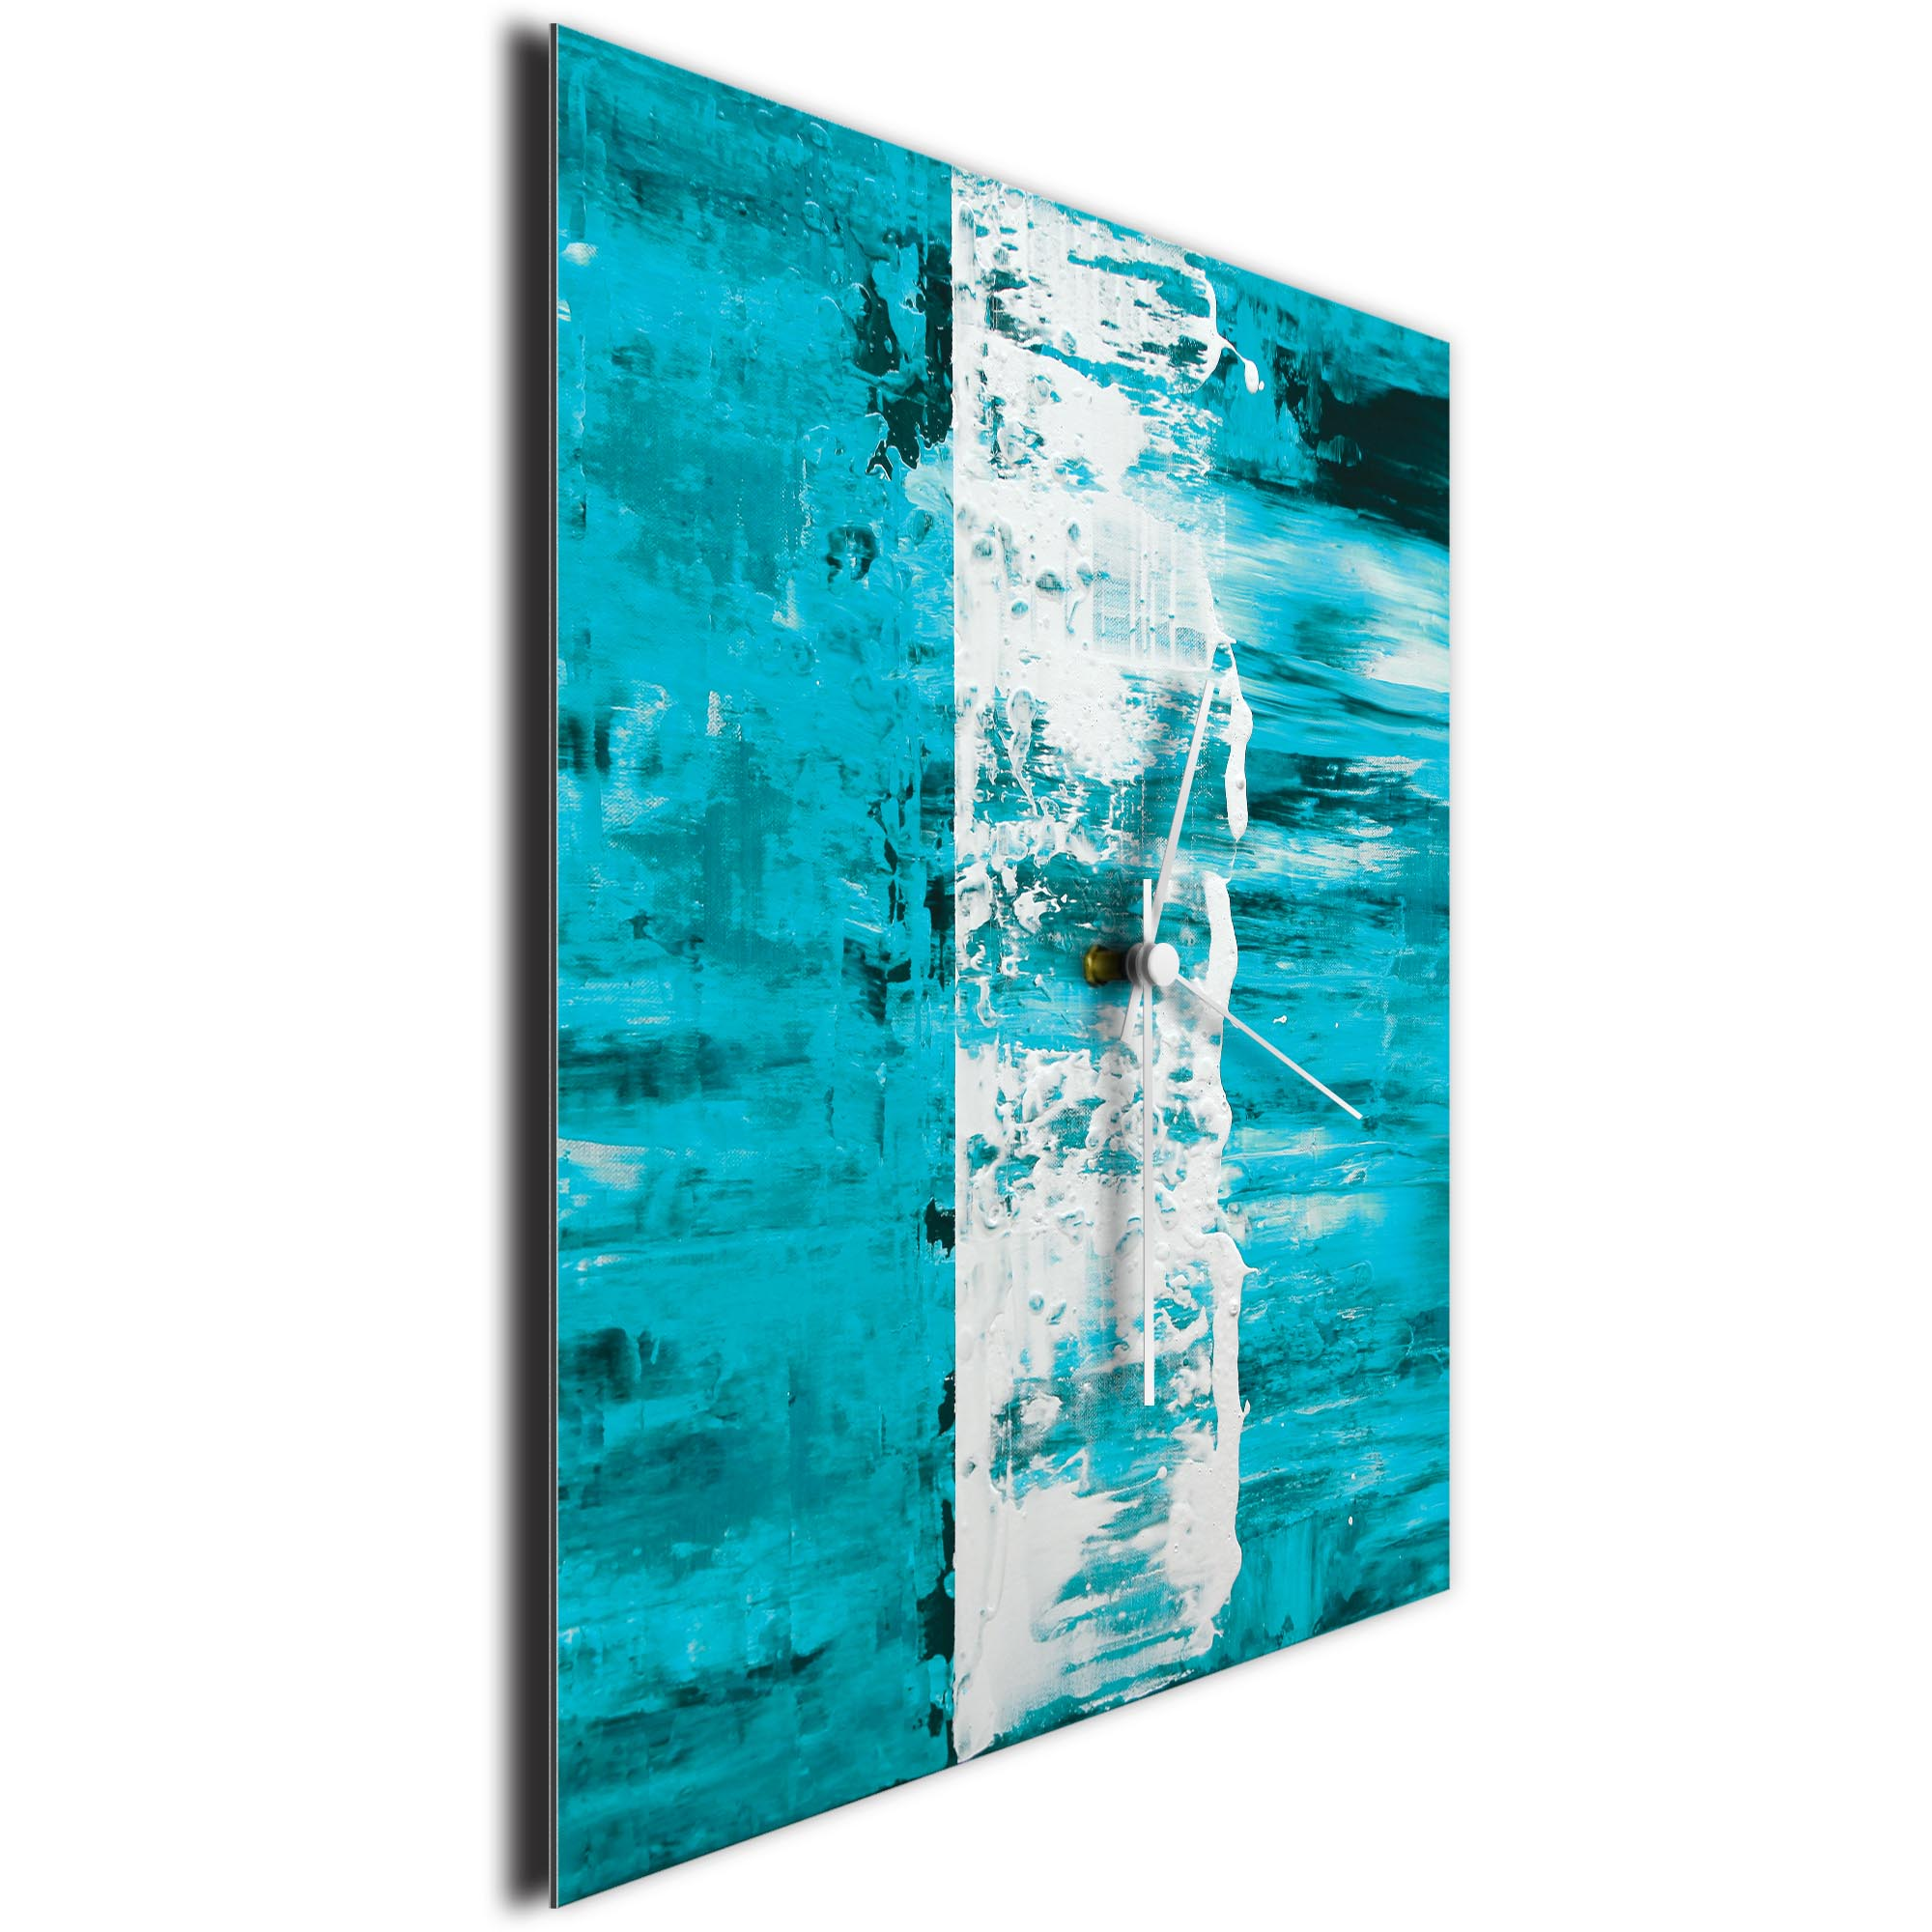 Teal Street Square Clock by Mendo Vasilevski - Urban Abstract Home Decor - Image 3